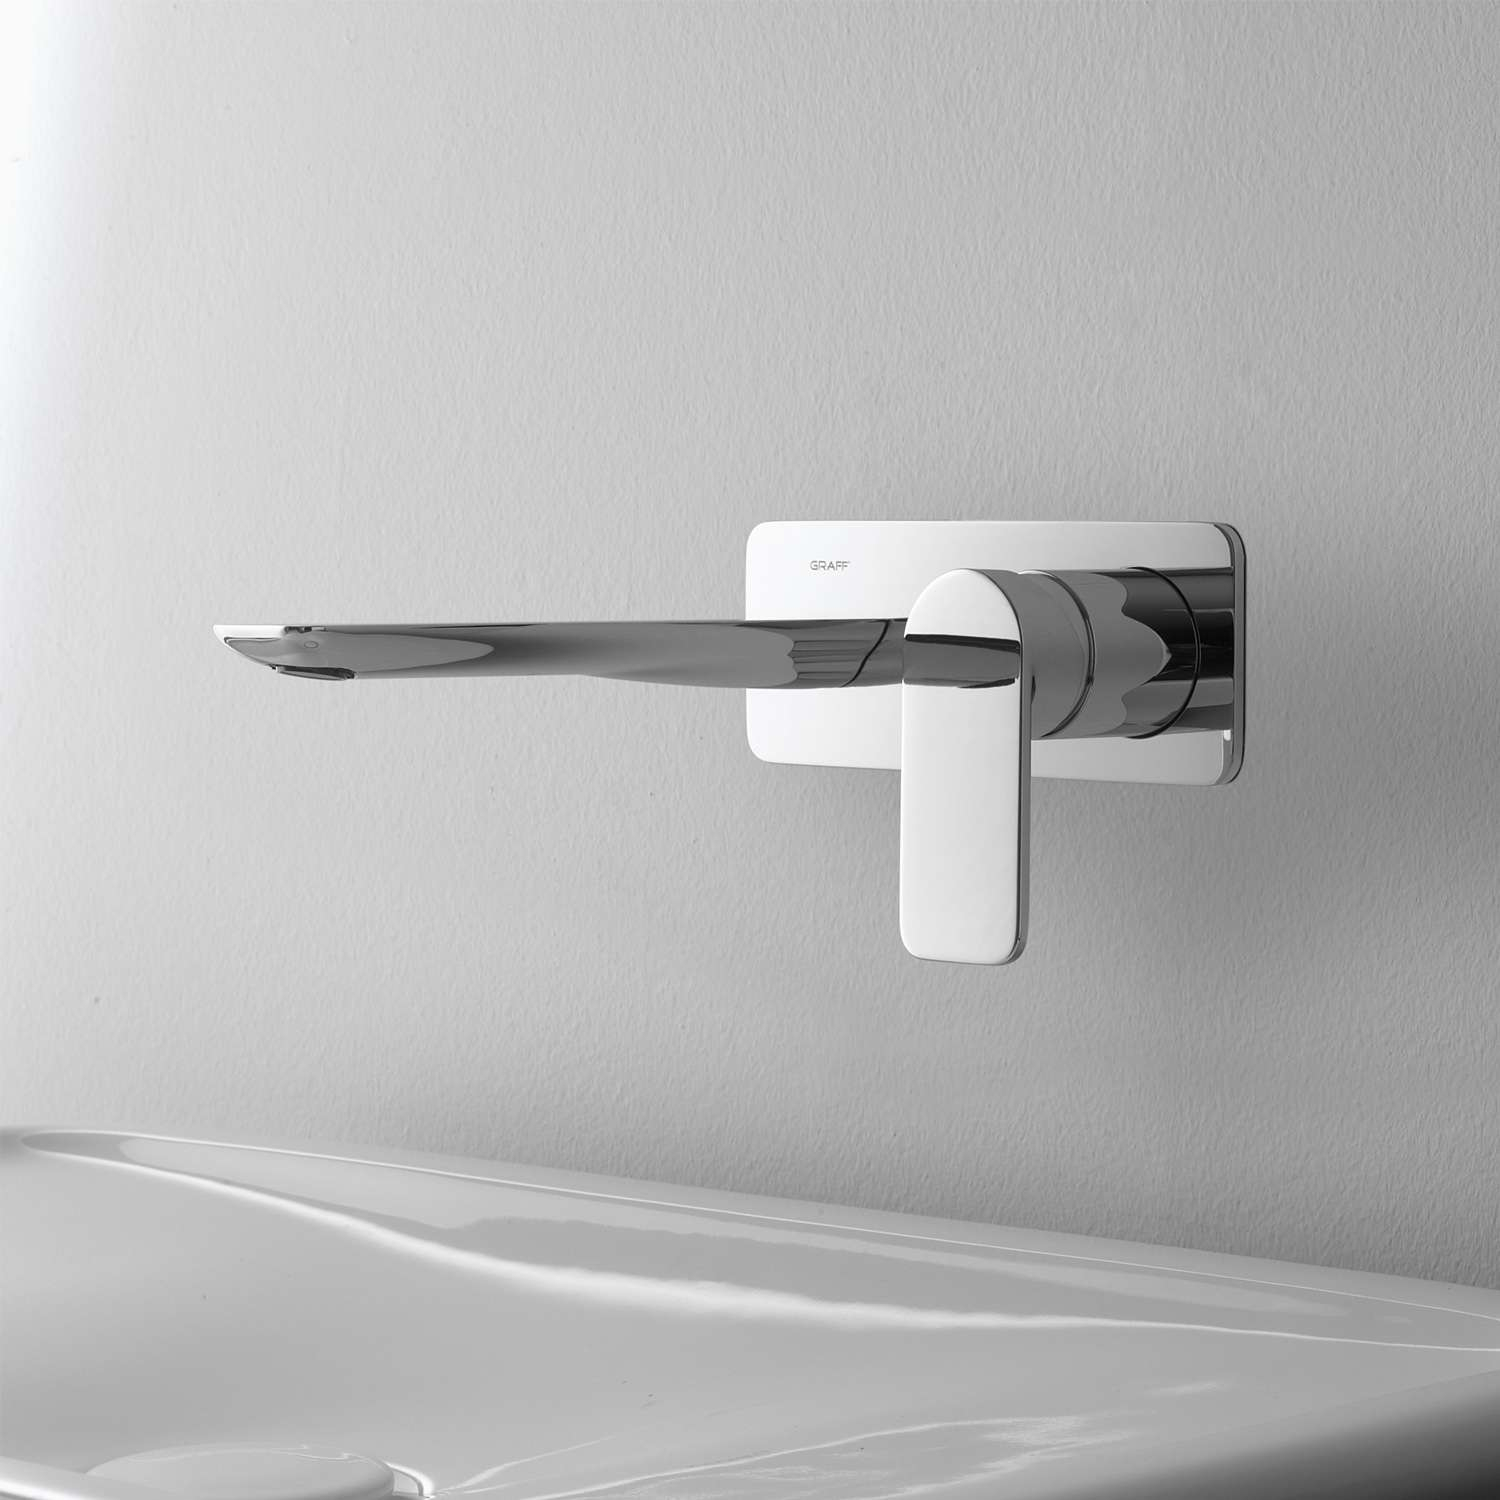 Ideas, sento wall mounted lavatory faucet g 6336 lm42w graff yliving with regard to sizing 1500 x 1500  .